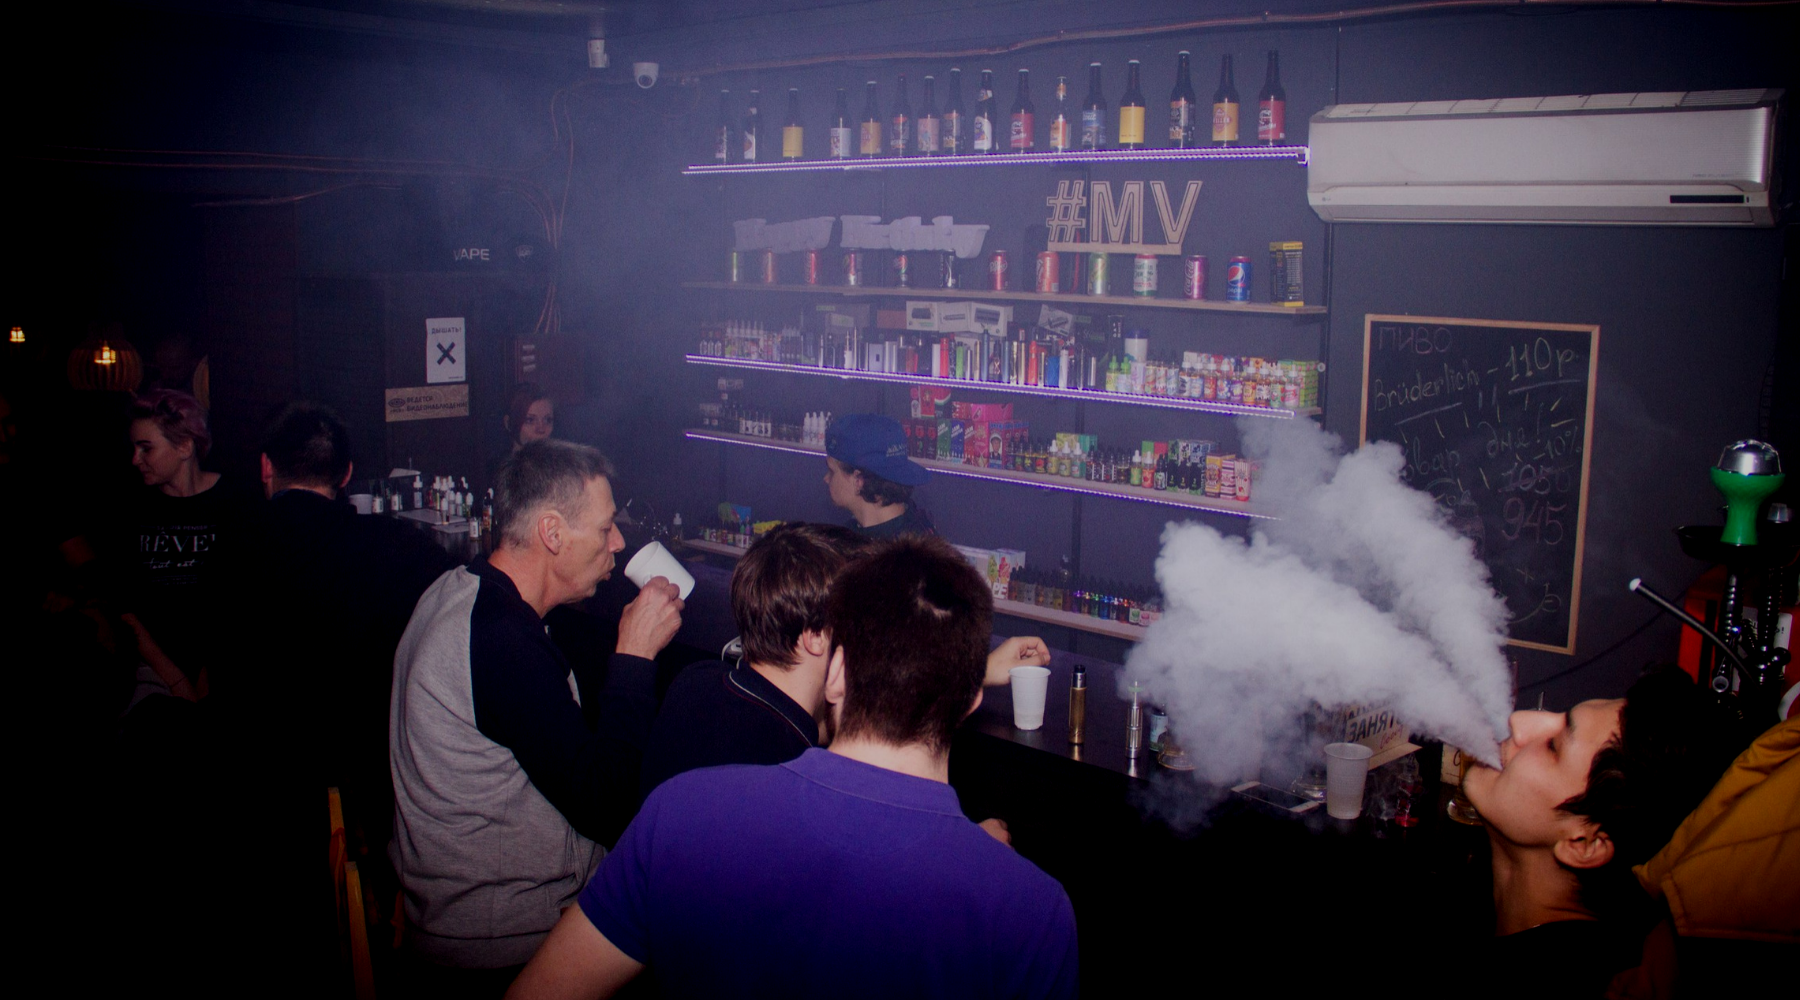 Vape Shop in Newport, UK